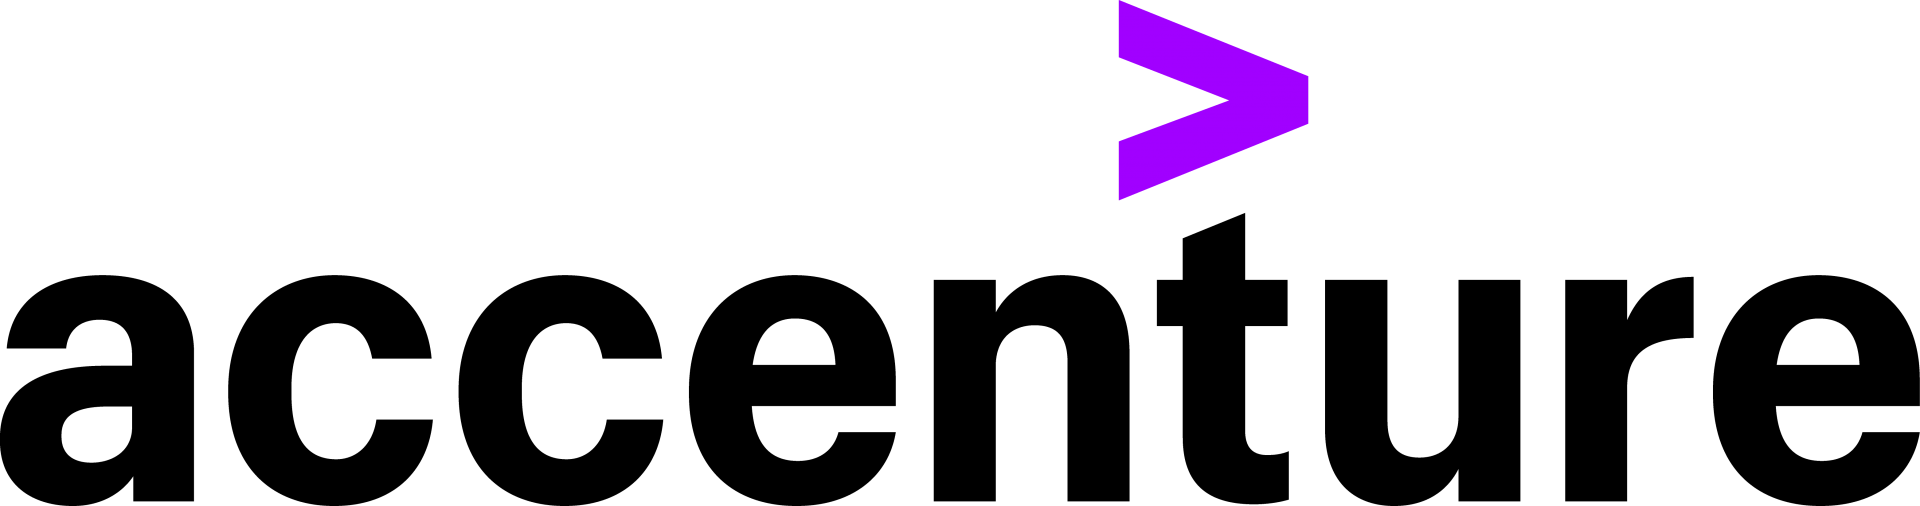 MACo Welcomes Accenture as New Corporate Partner!